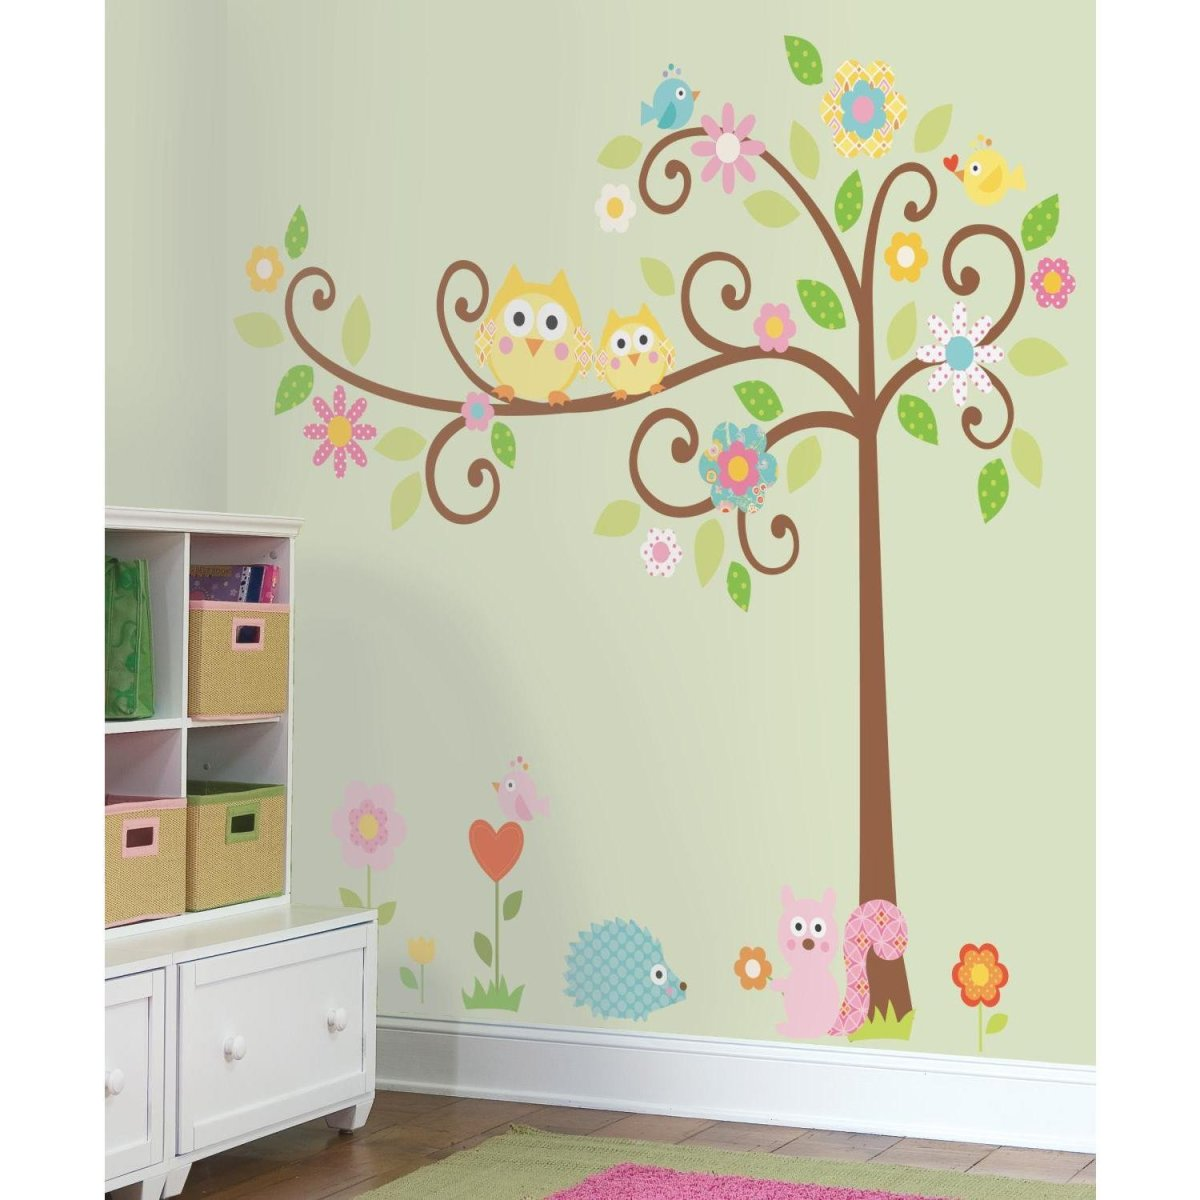 Baby Girl's Nursery Room Decor for Bedding